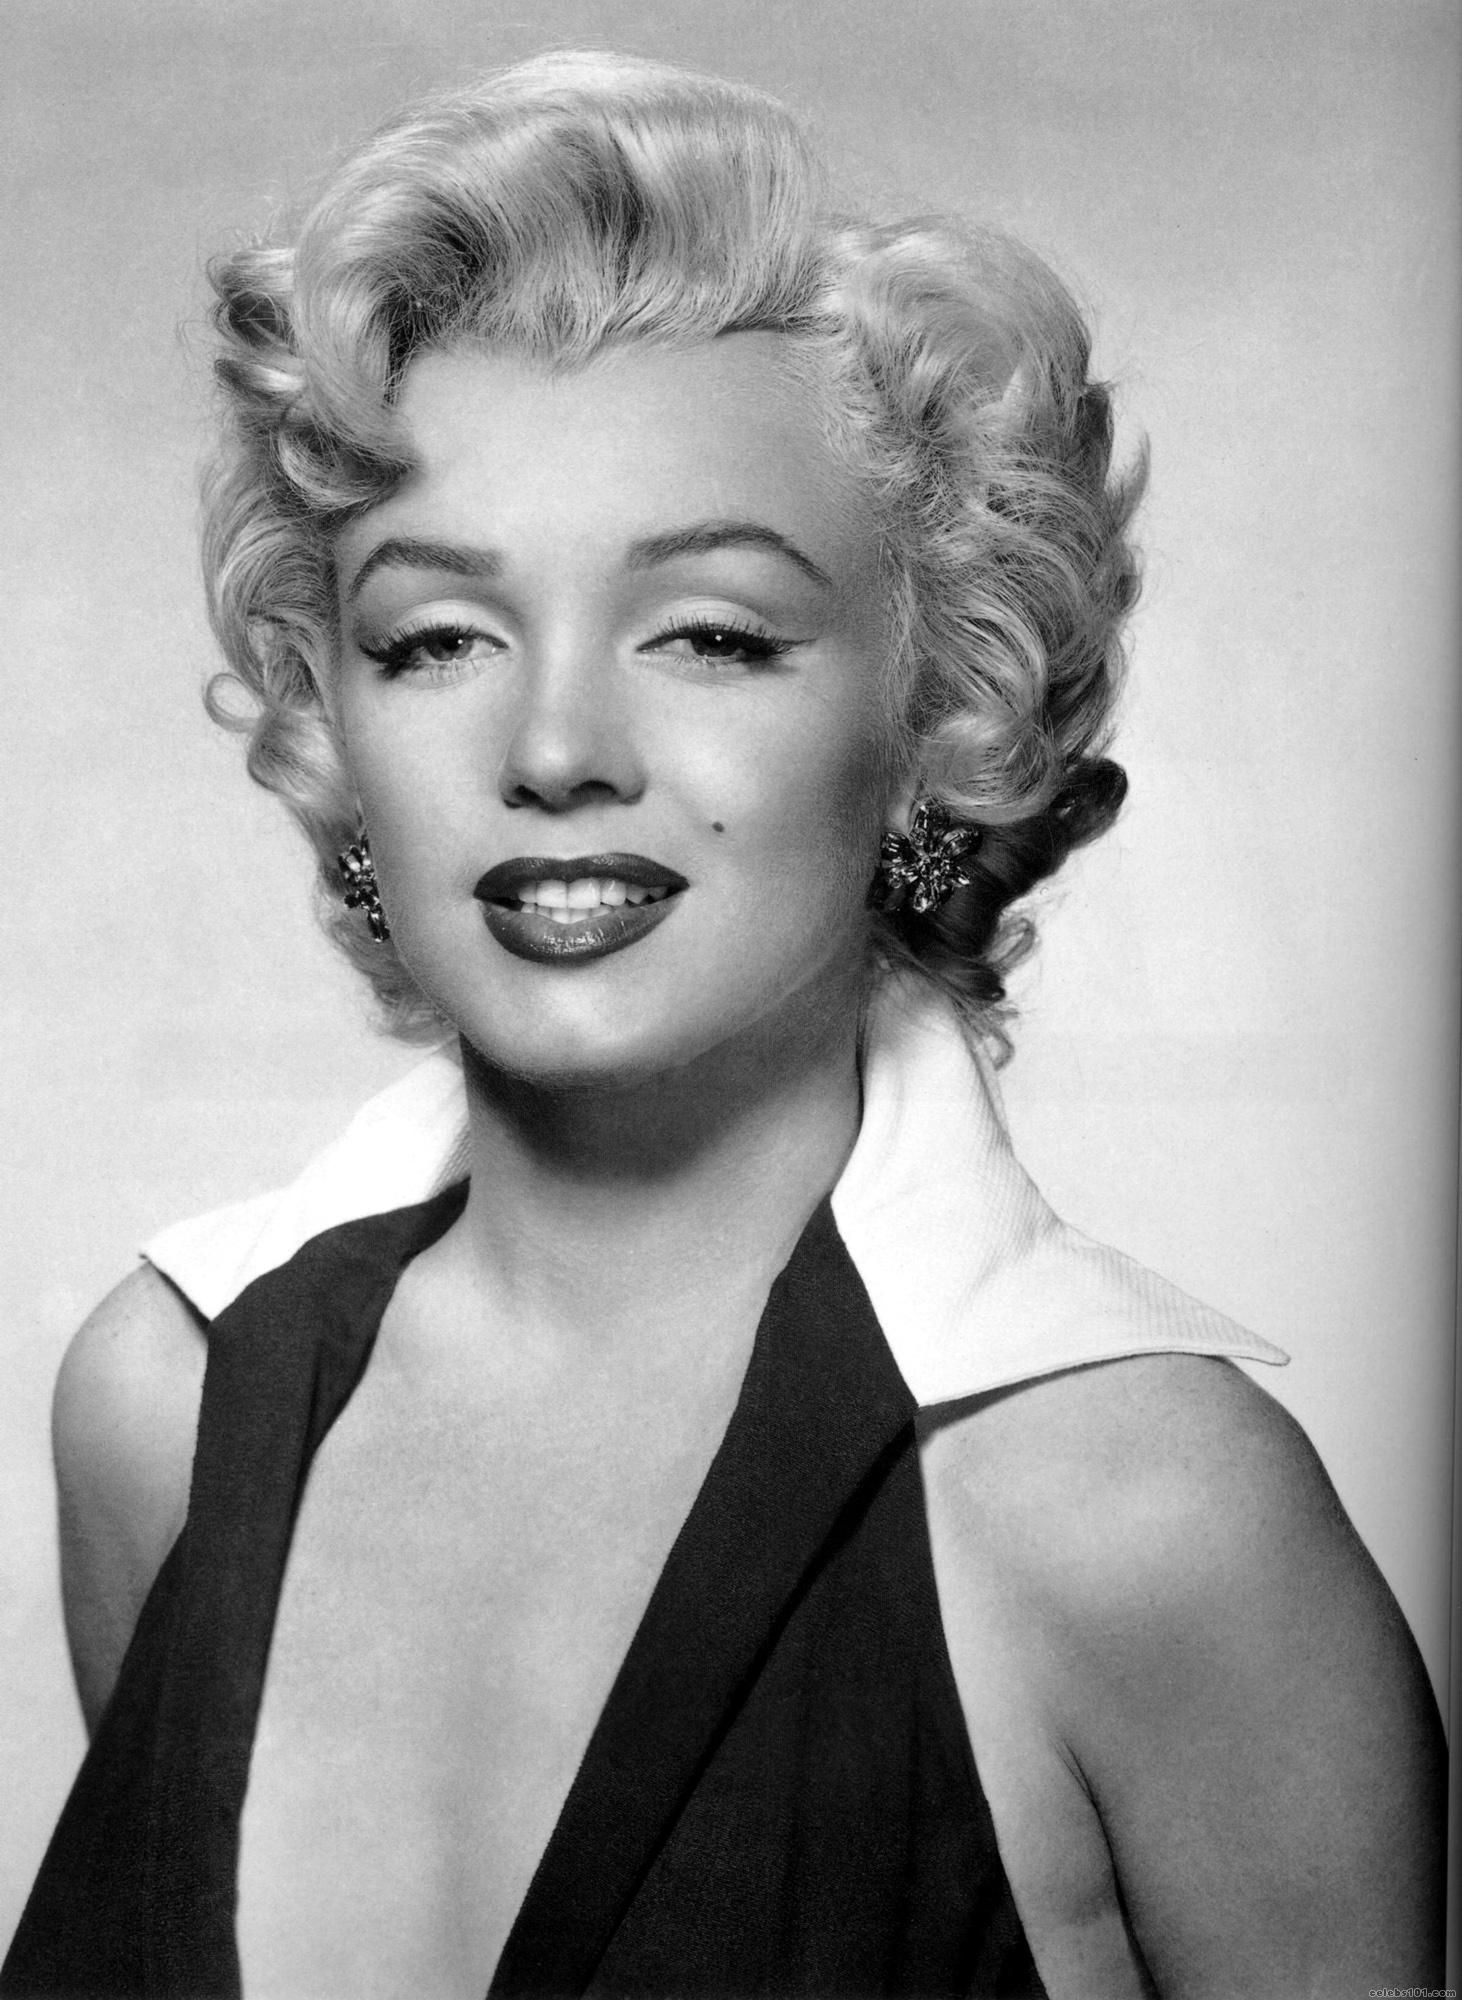 picture 36. Marilyn Monroe